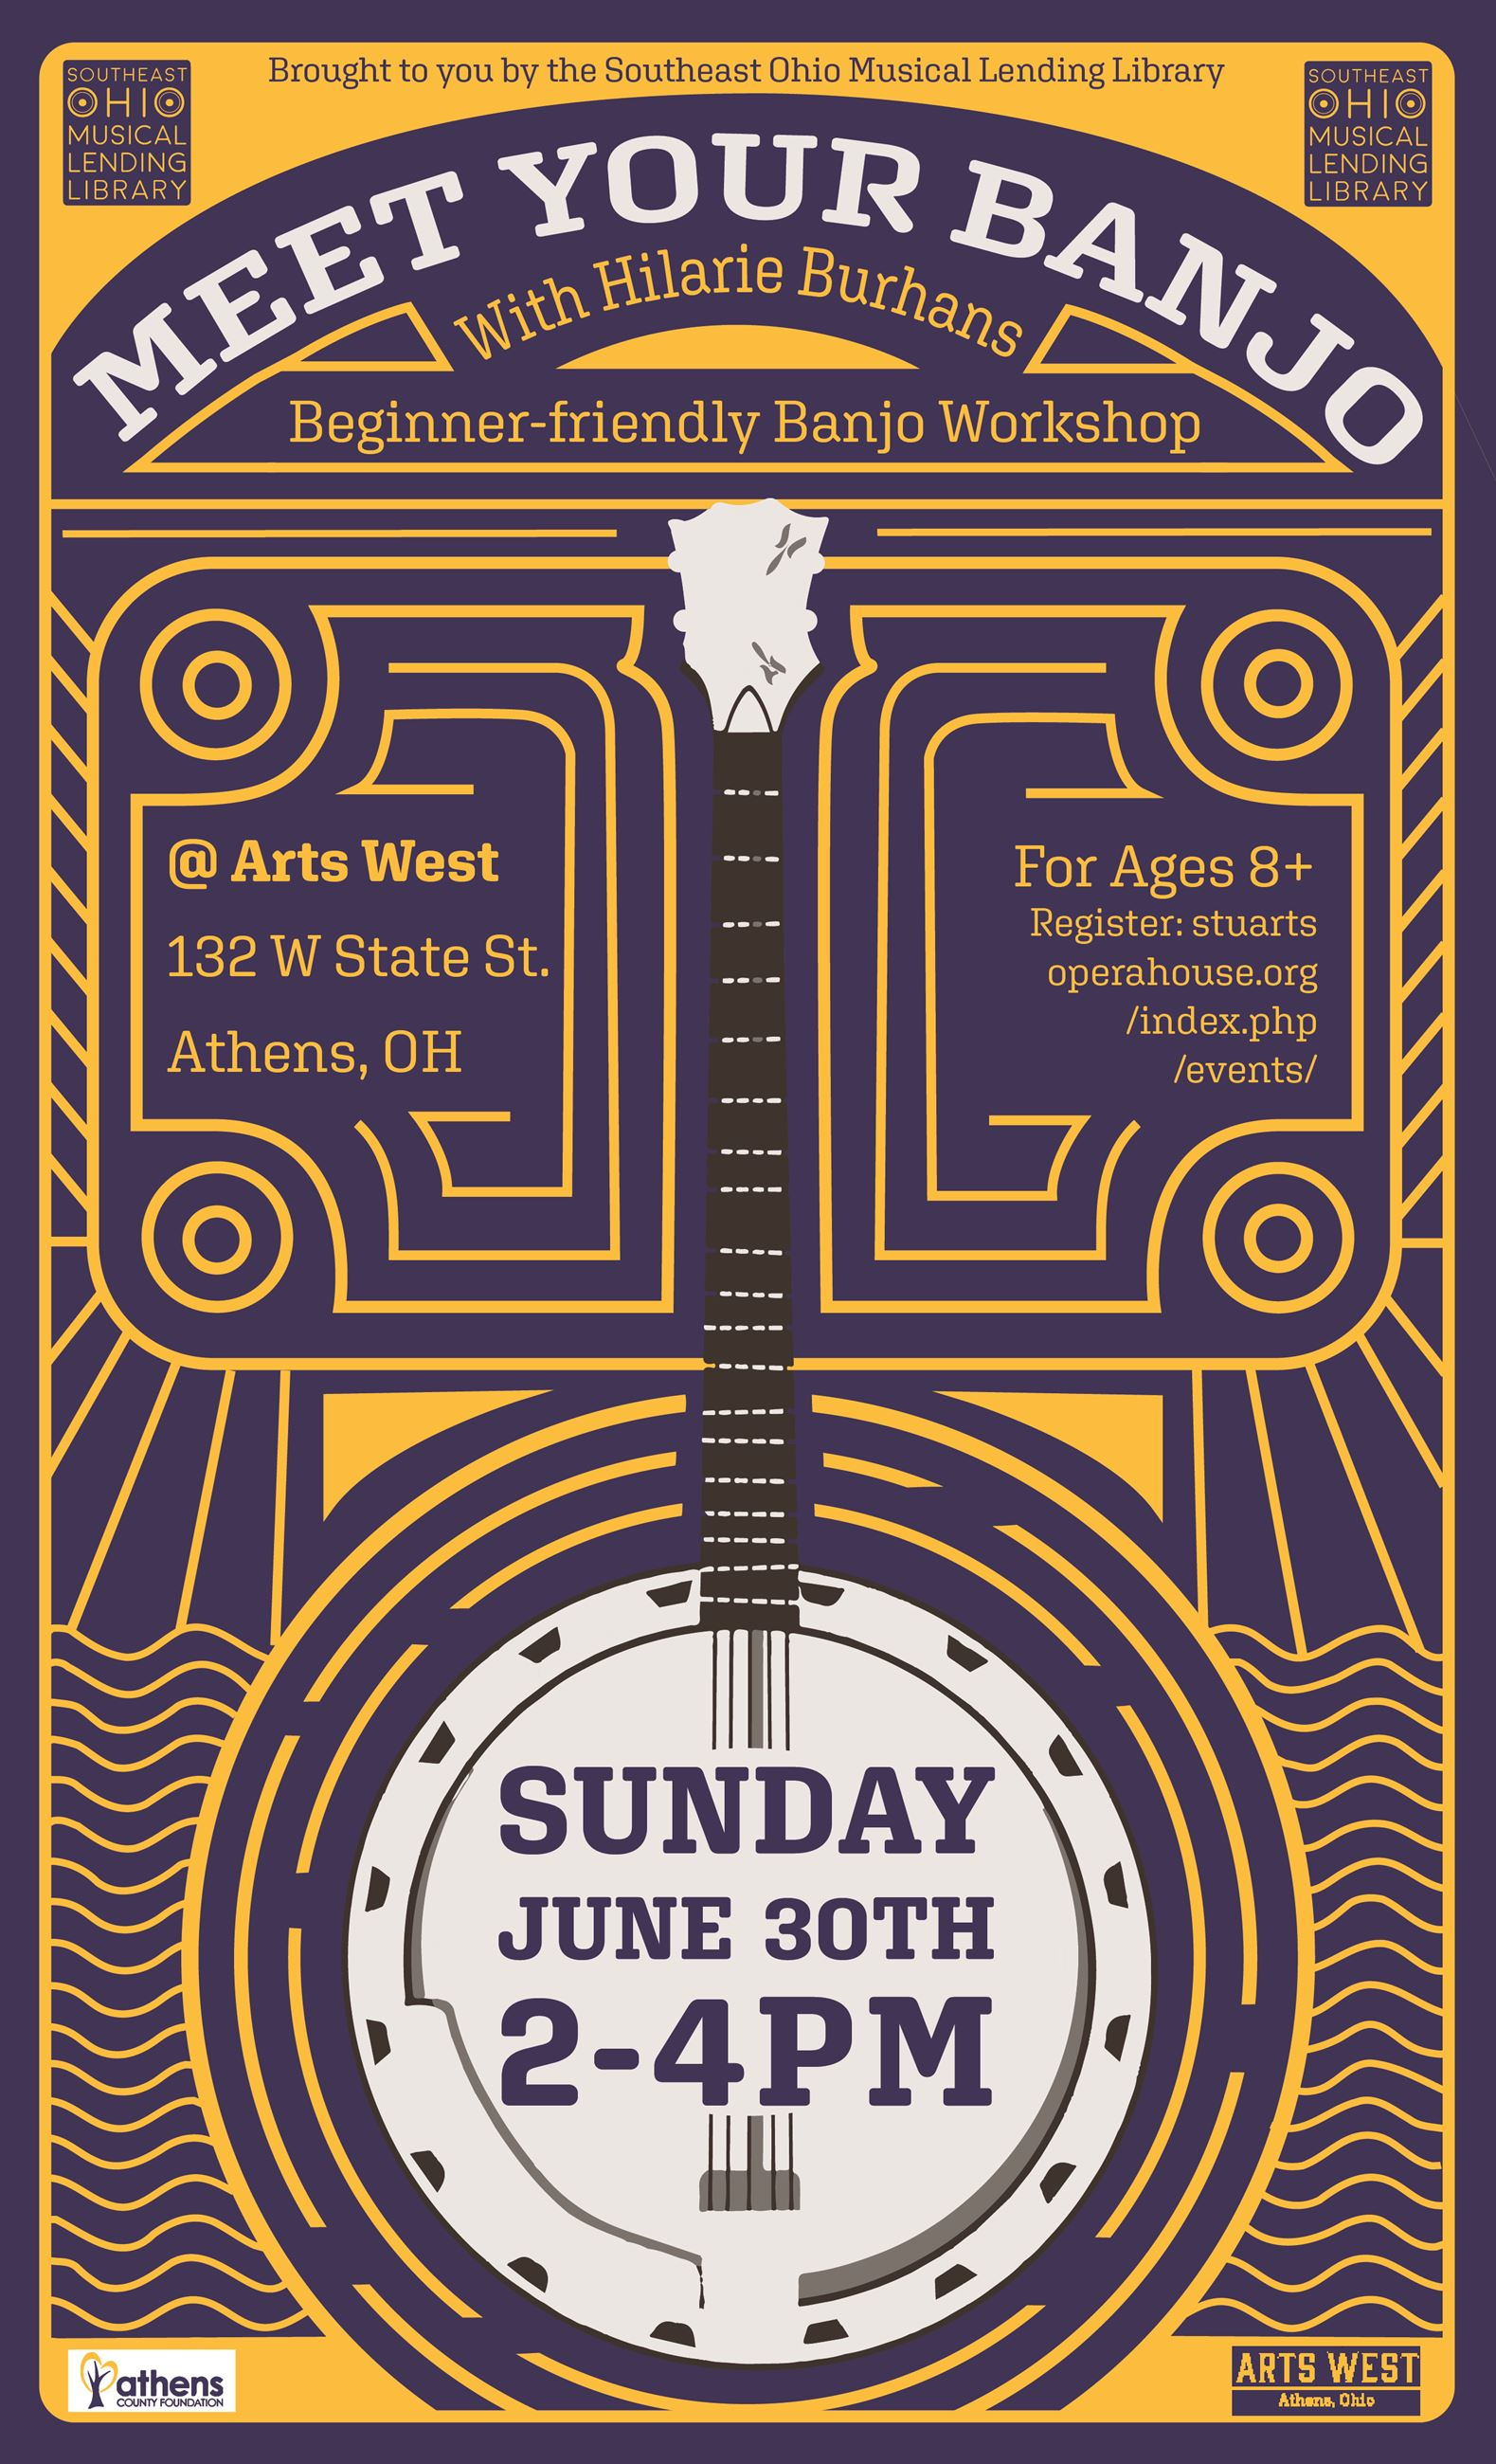 SEO MLL Banjo Workshop Poster 6.2019